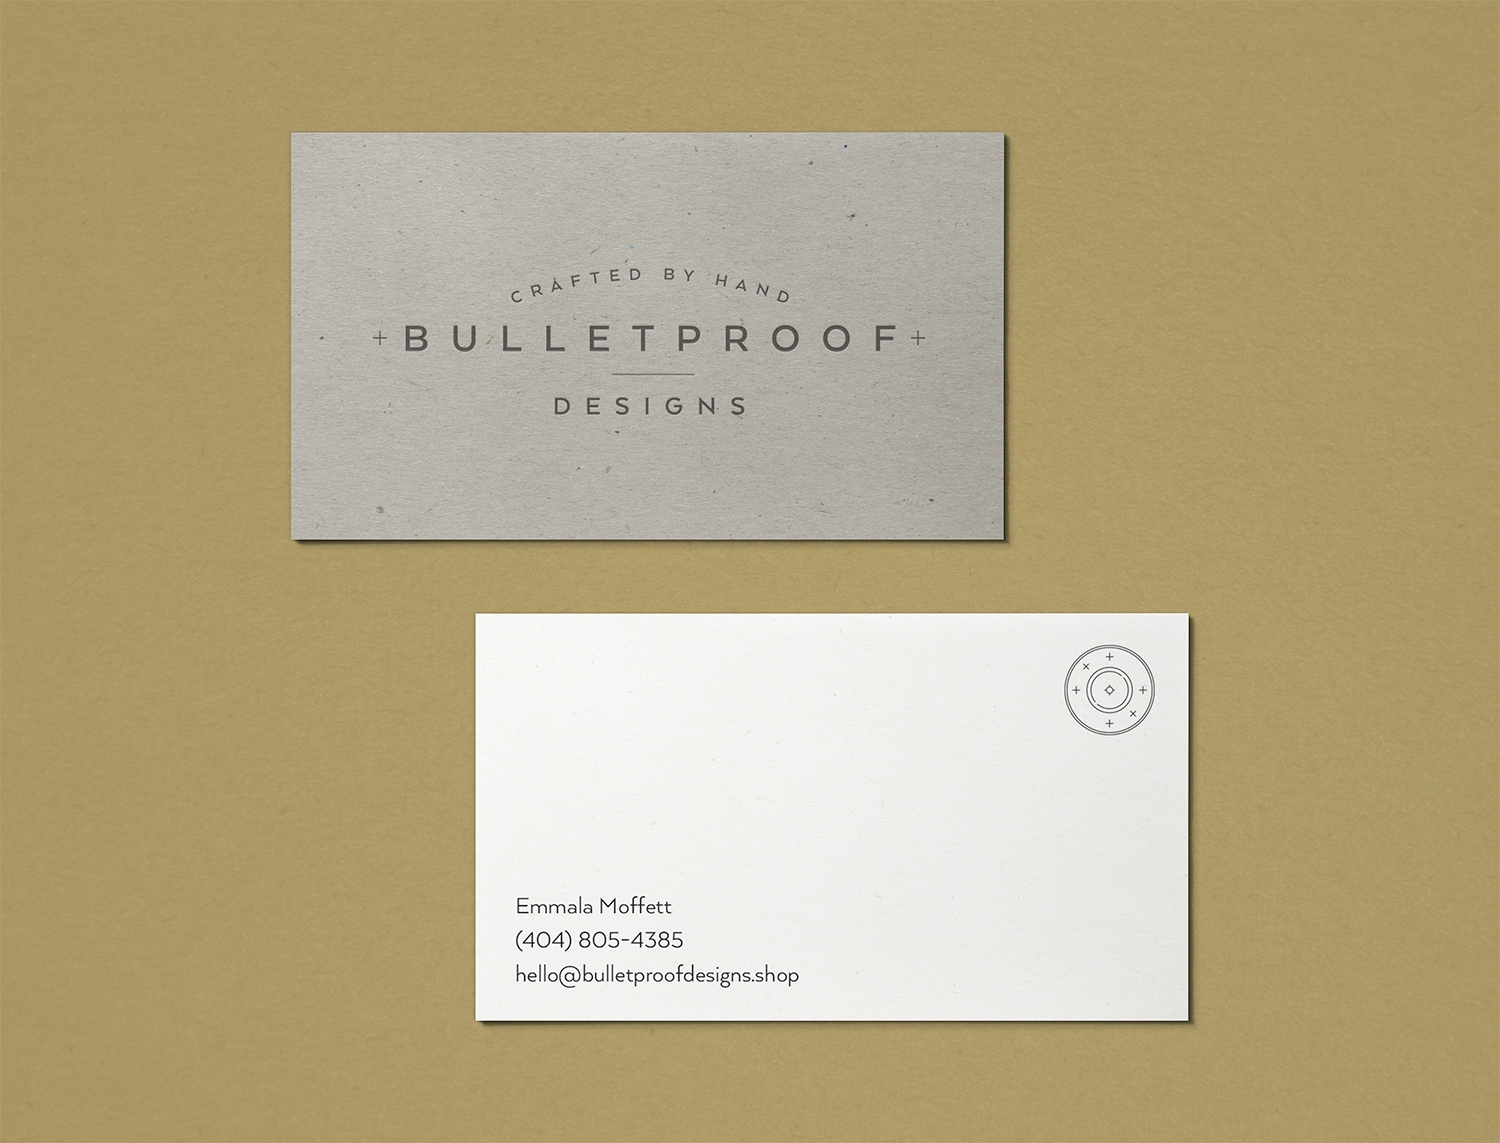 Bulletproof Designs